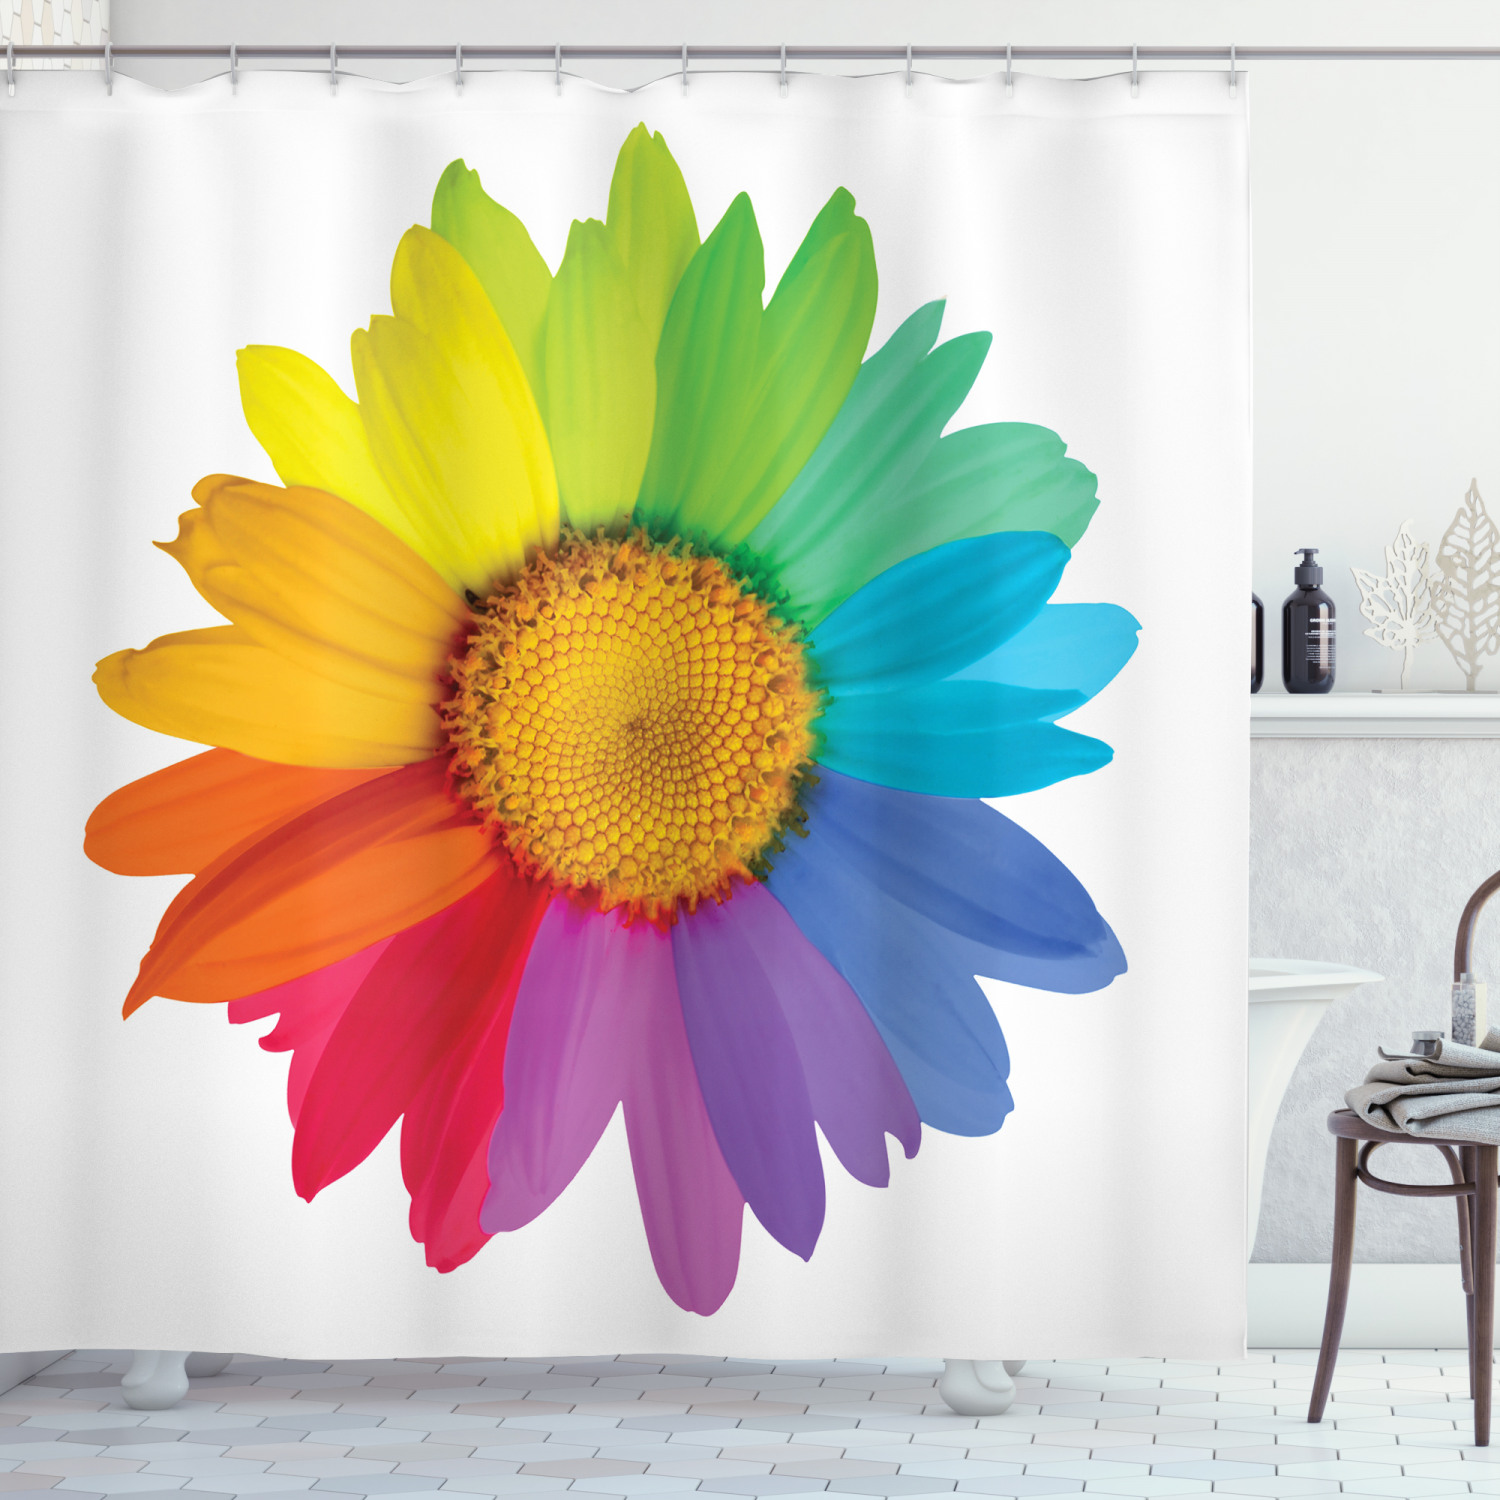 flower shower curtain rainbow colored sunflower or daisy spring inspired image hippie style modern design fabric bathroom set with hooks